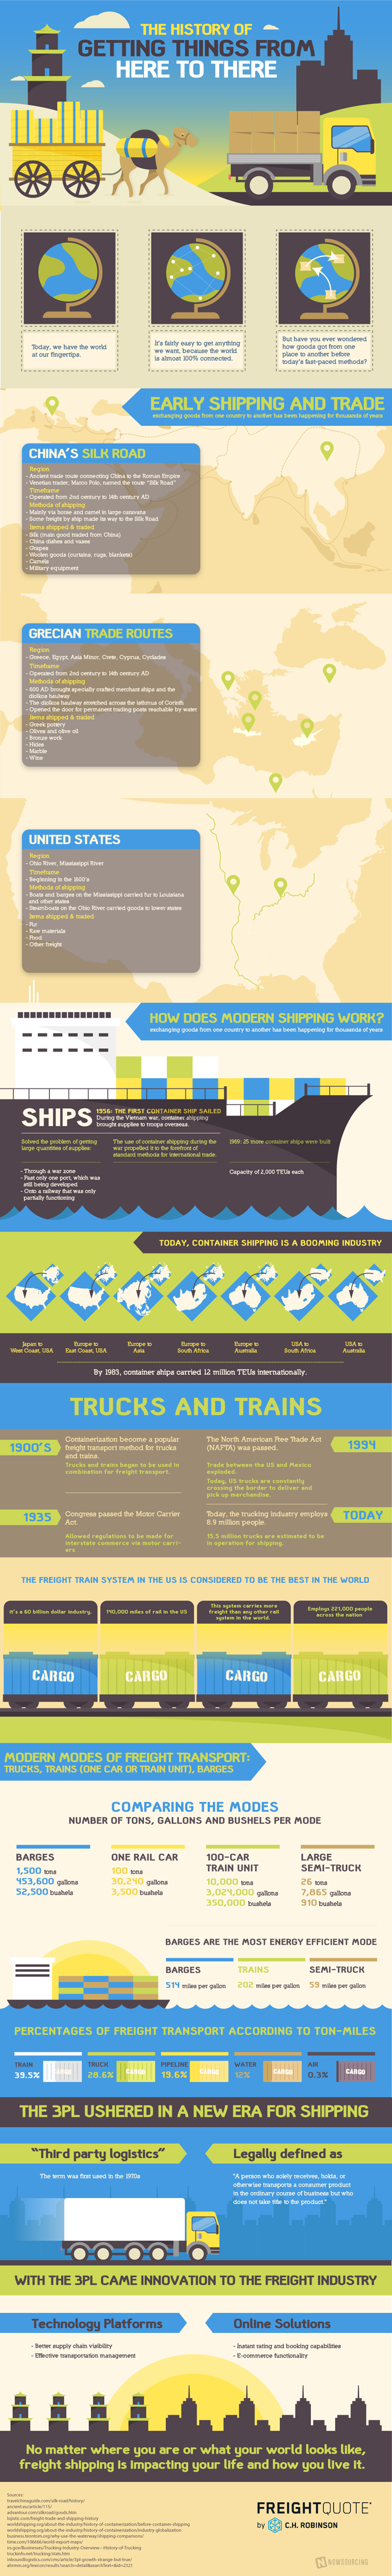 History of freight shipping